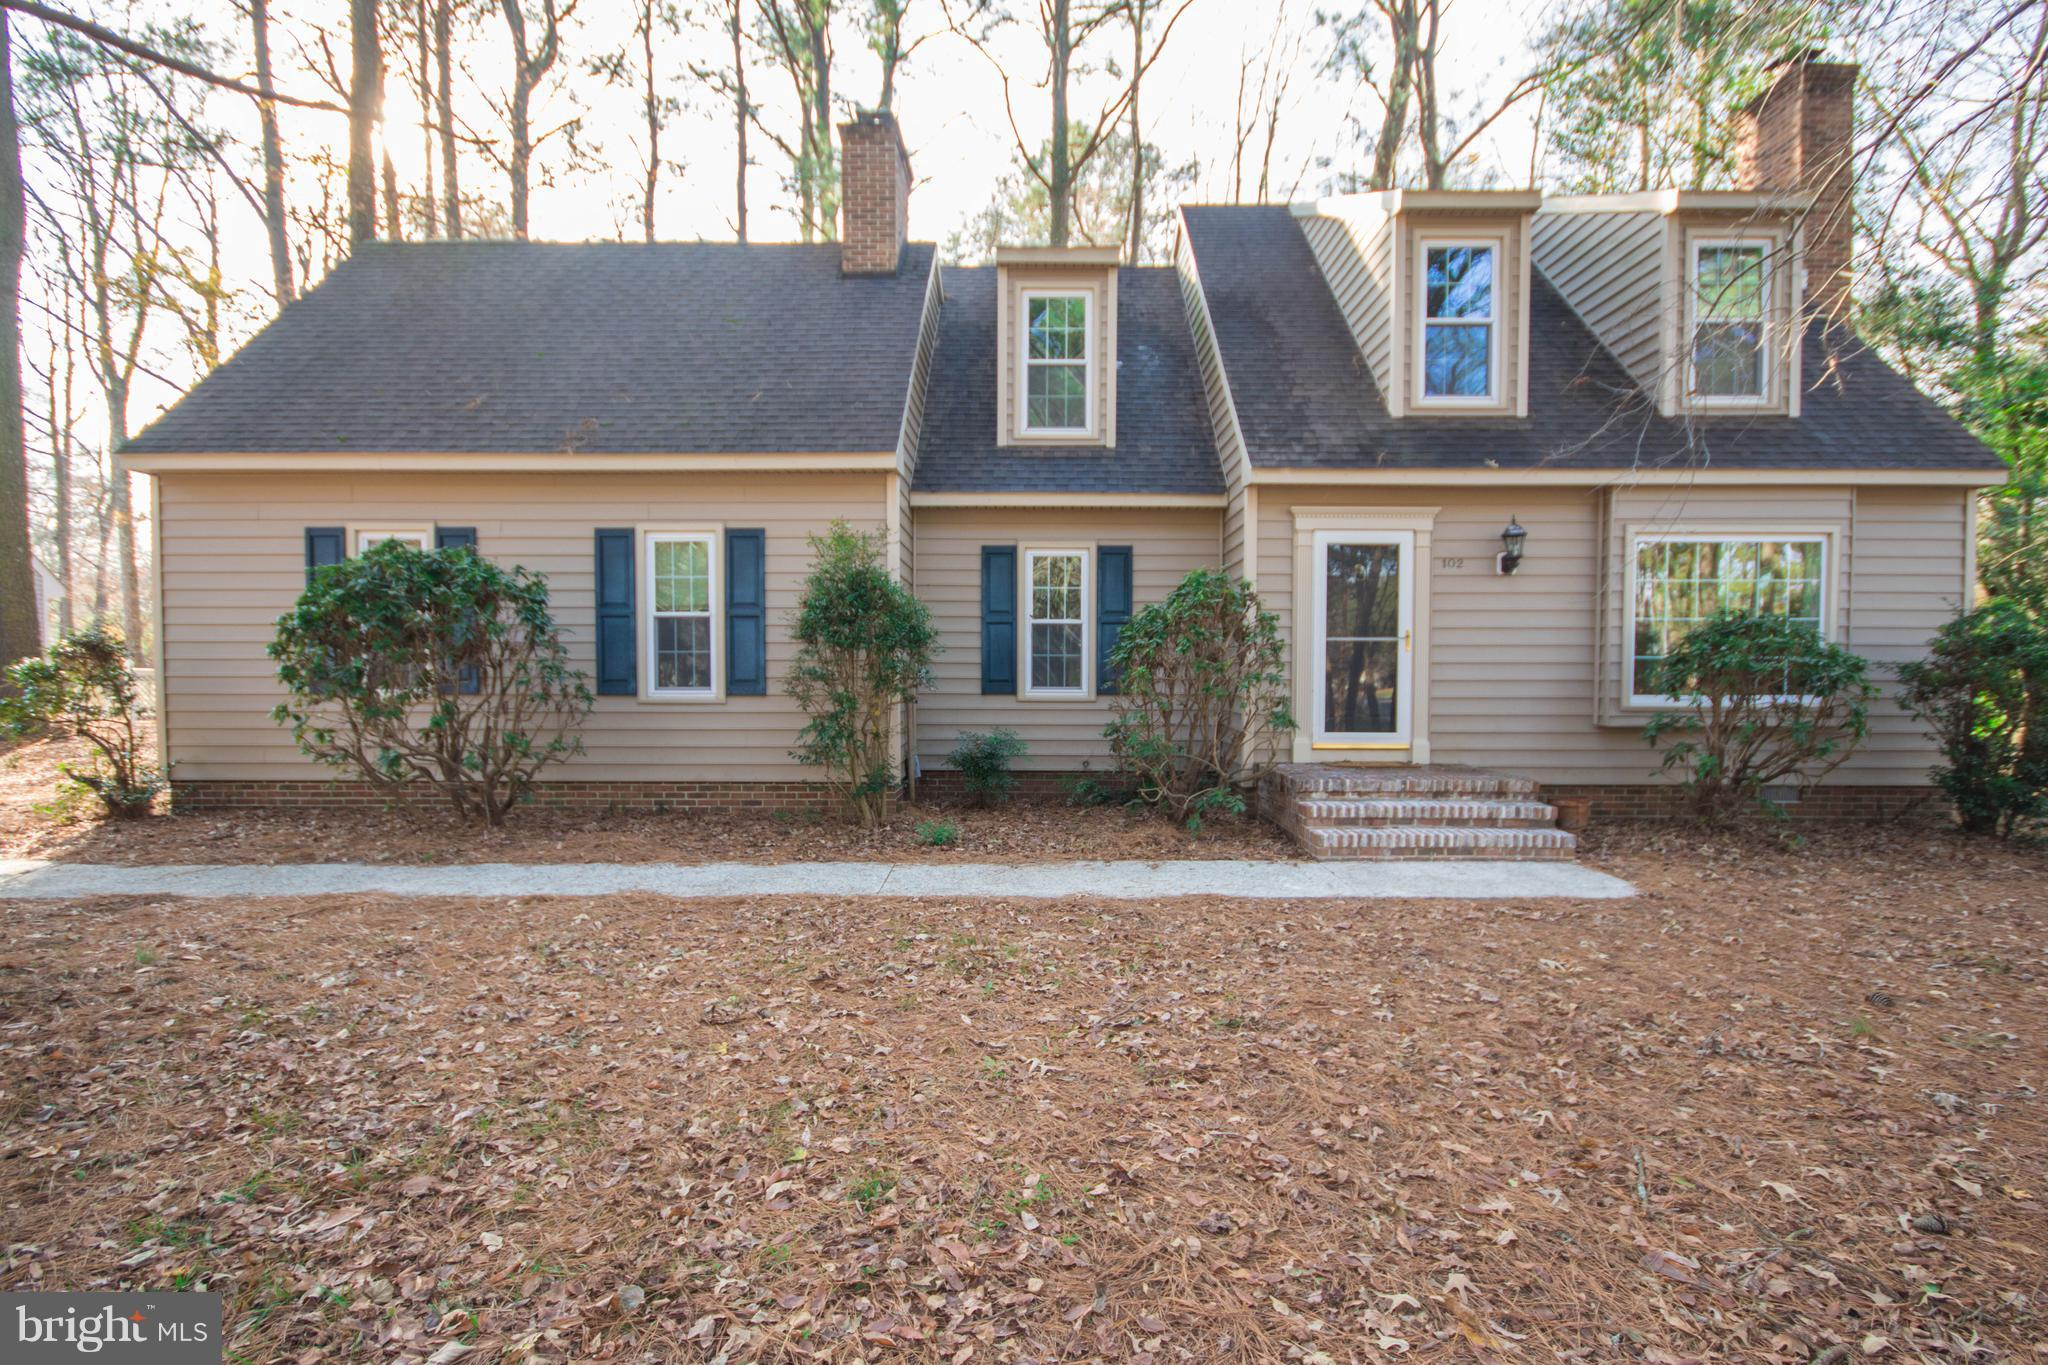 102 AUTUMN LANE, FRUITLAND, MD 21826